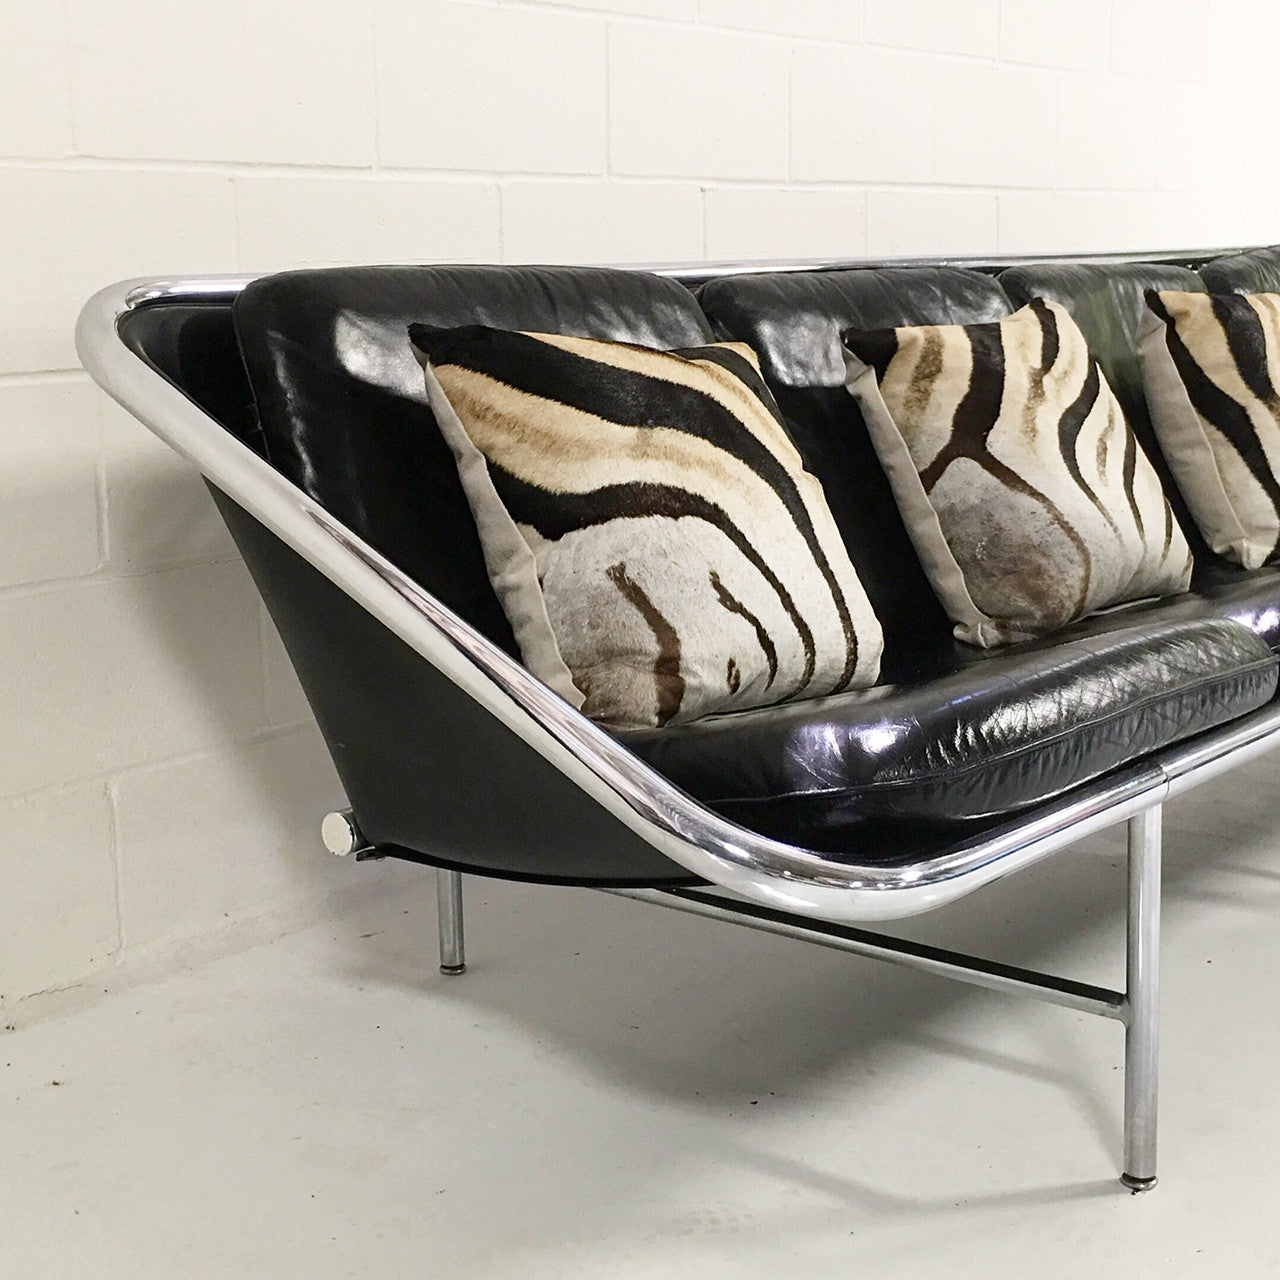 Model 6833 Sling Sofa with Zebra Pillows - FORSYTH